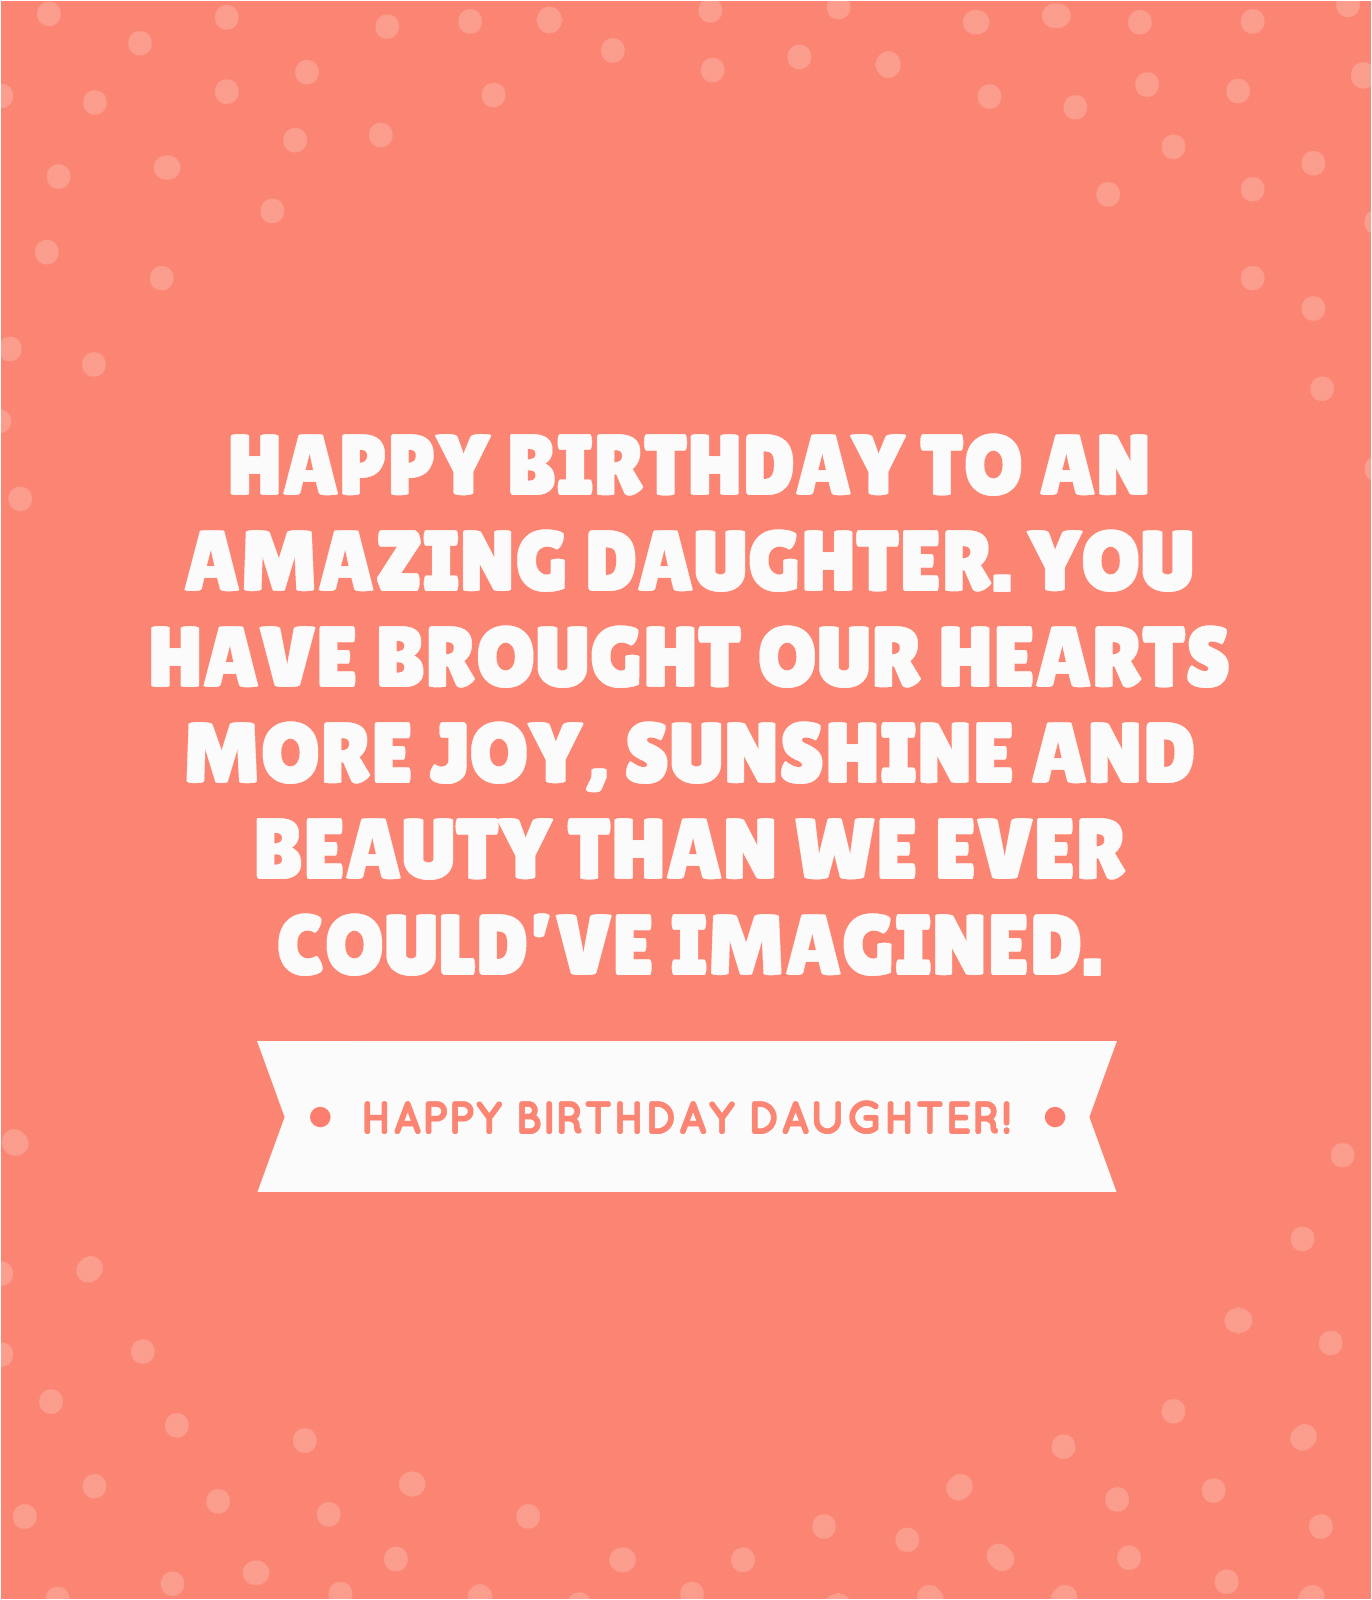 Happy Birthday to Your Daughter Quotes 35 Beautiful Ways to Say Happy Birthday Daughter Unique